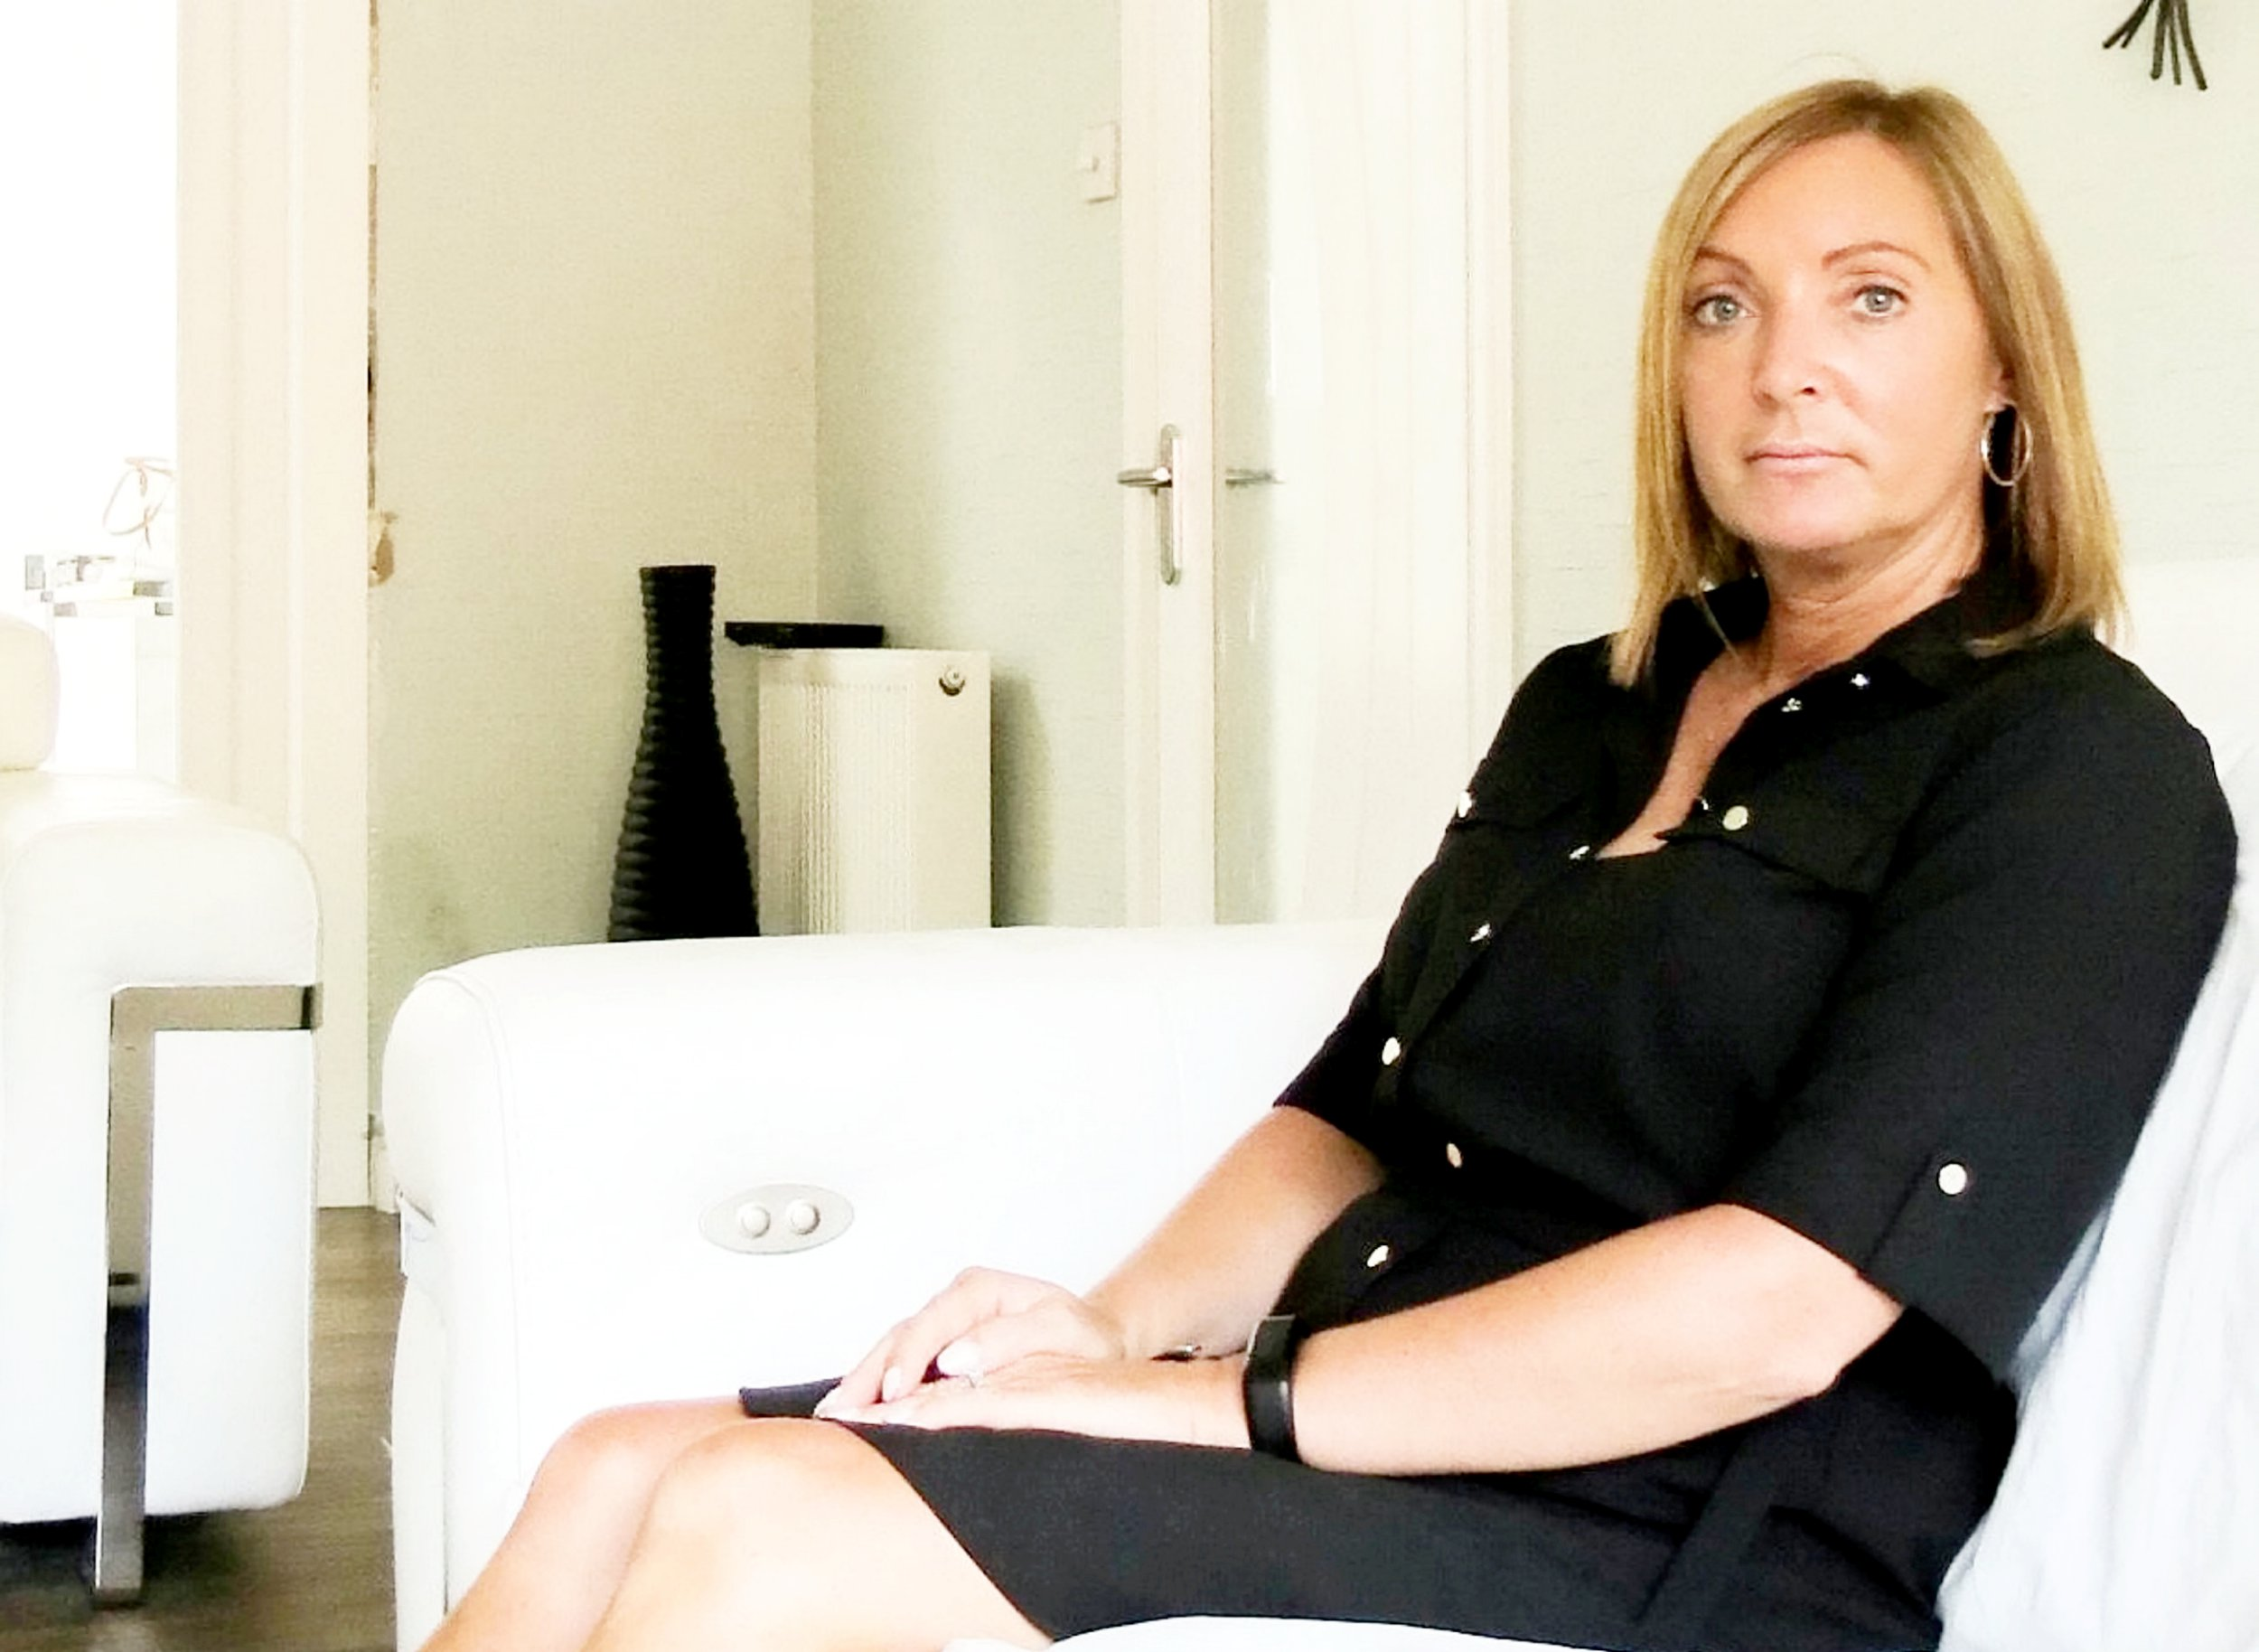 Adele Burns, 47. A mum has started a ??1million landmark legal action against a beauty salon over claims a botched hair treatment caused a STROKE. See CENTRE PRESS story CPHAIR. Adele Burns, 47, suffered the life-changing injury during what was meant to be a special day of pampering. Stylists at Rainbow Rooms in Glasgow washed the nurse???s hair six times after failing to get the colour right. But less than 24 hours later Adele suffered a massive stroke which medics linked to her head being repeatedly pulled backwards into the salon basin which also allegedly did not have protective padding. Adele from Mid Calder, West Lothian now hopes the court action ??? the first of its kind in Scotland ??? will hold parlour bosses accountable and improve standards to protect the public.